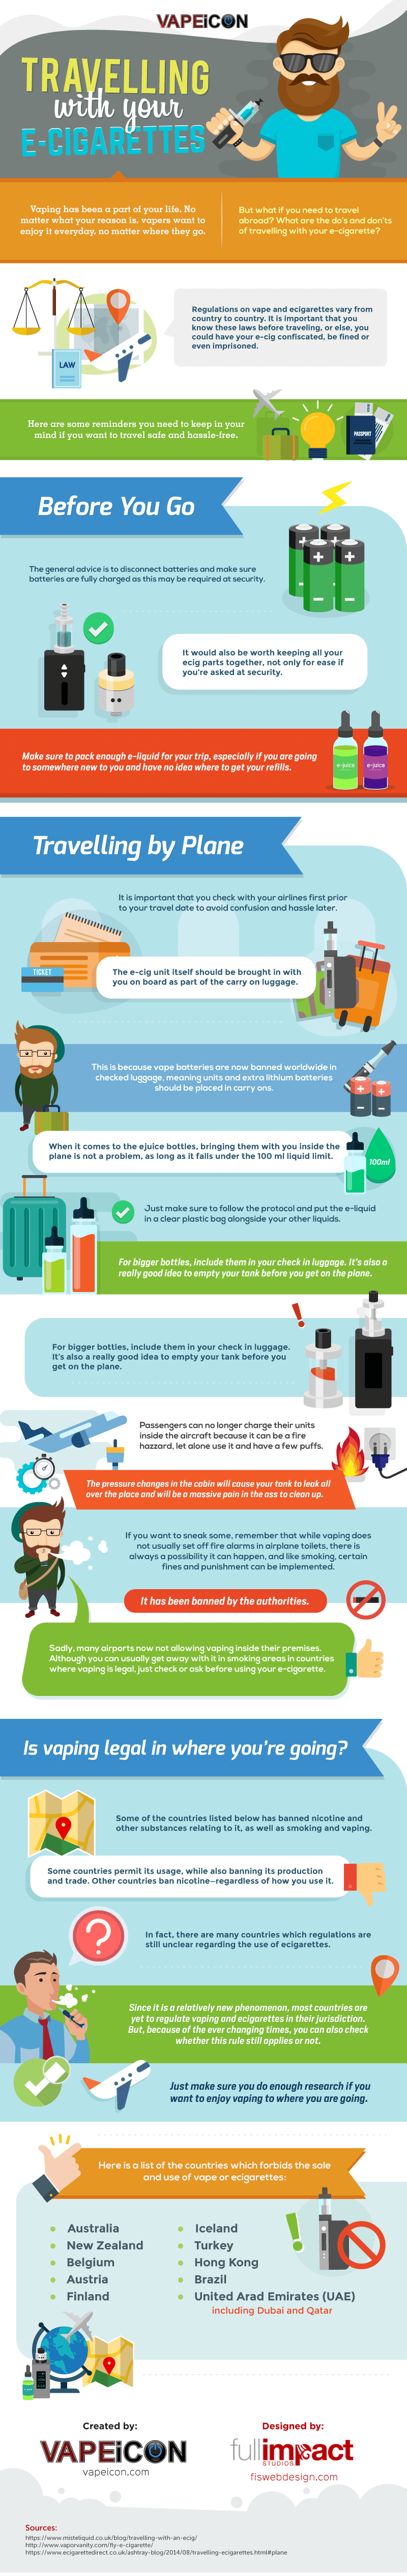 Travelling with Your E-Cigarettes